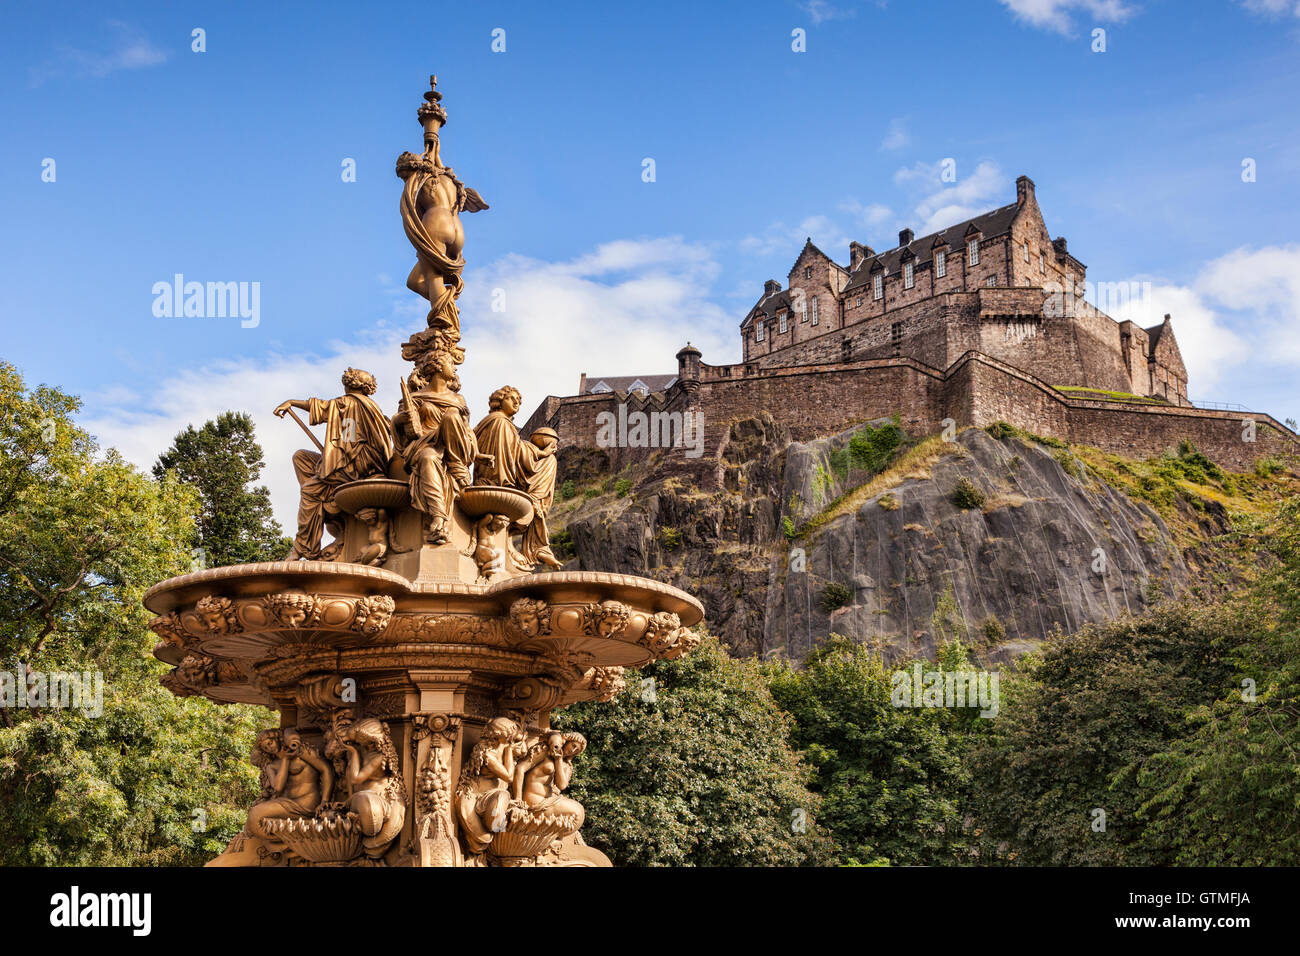 The Ross Fountain in Princes Street Gardens, and Edinburgh Castle, Scotland, UK. Stock Photo